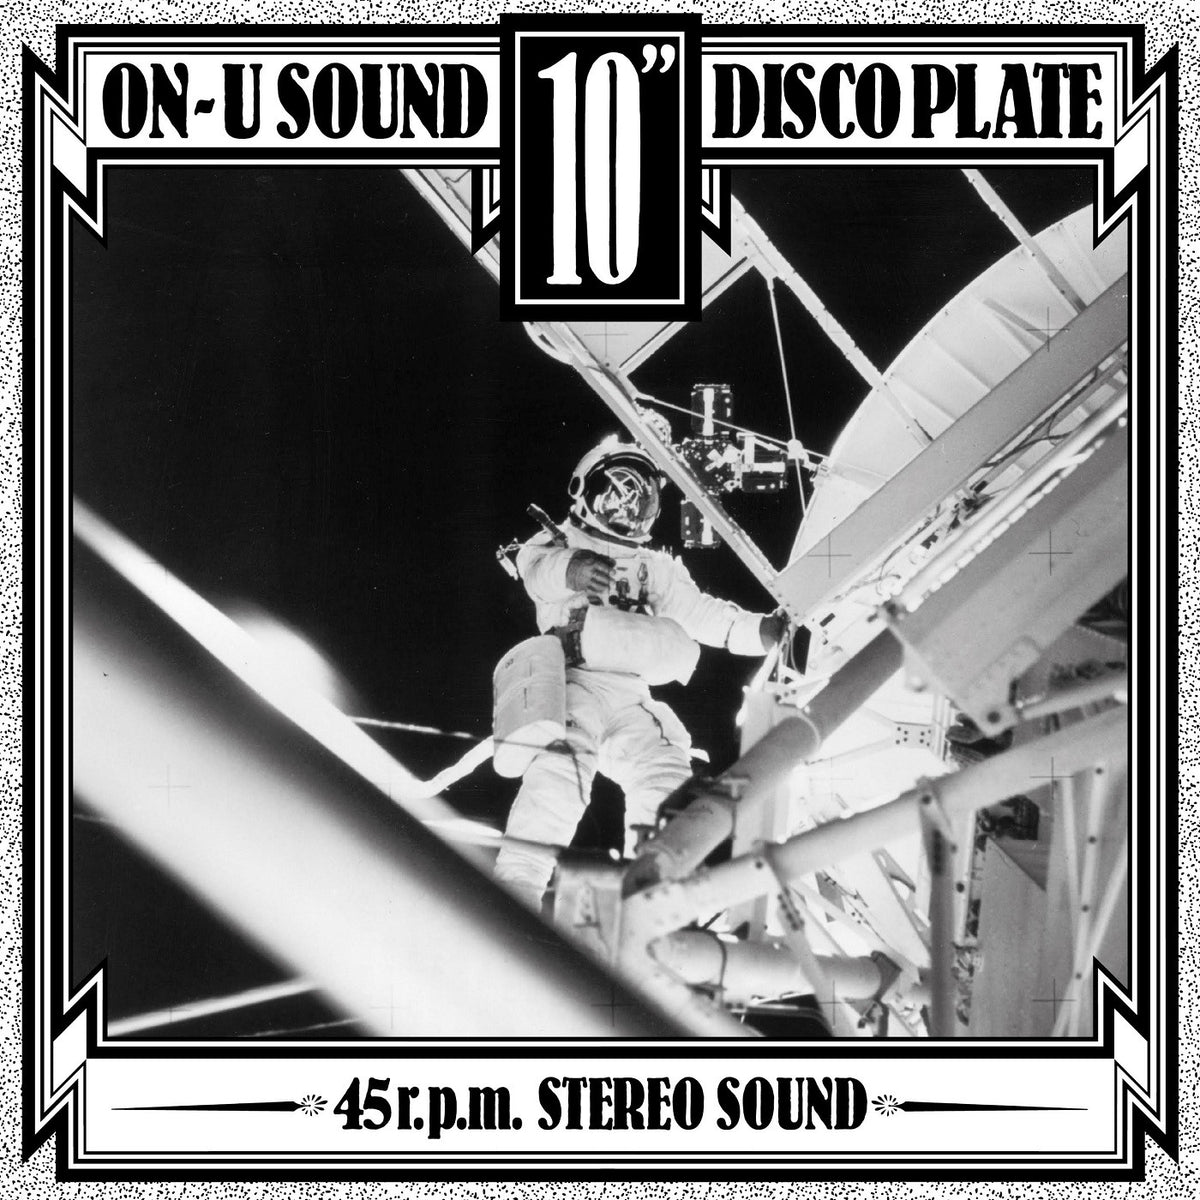 On-U Sound: An On-U Journey Through Time & Space Vinyl LP (Record Store Day)